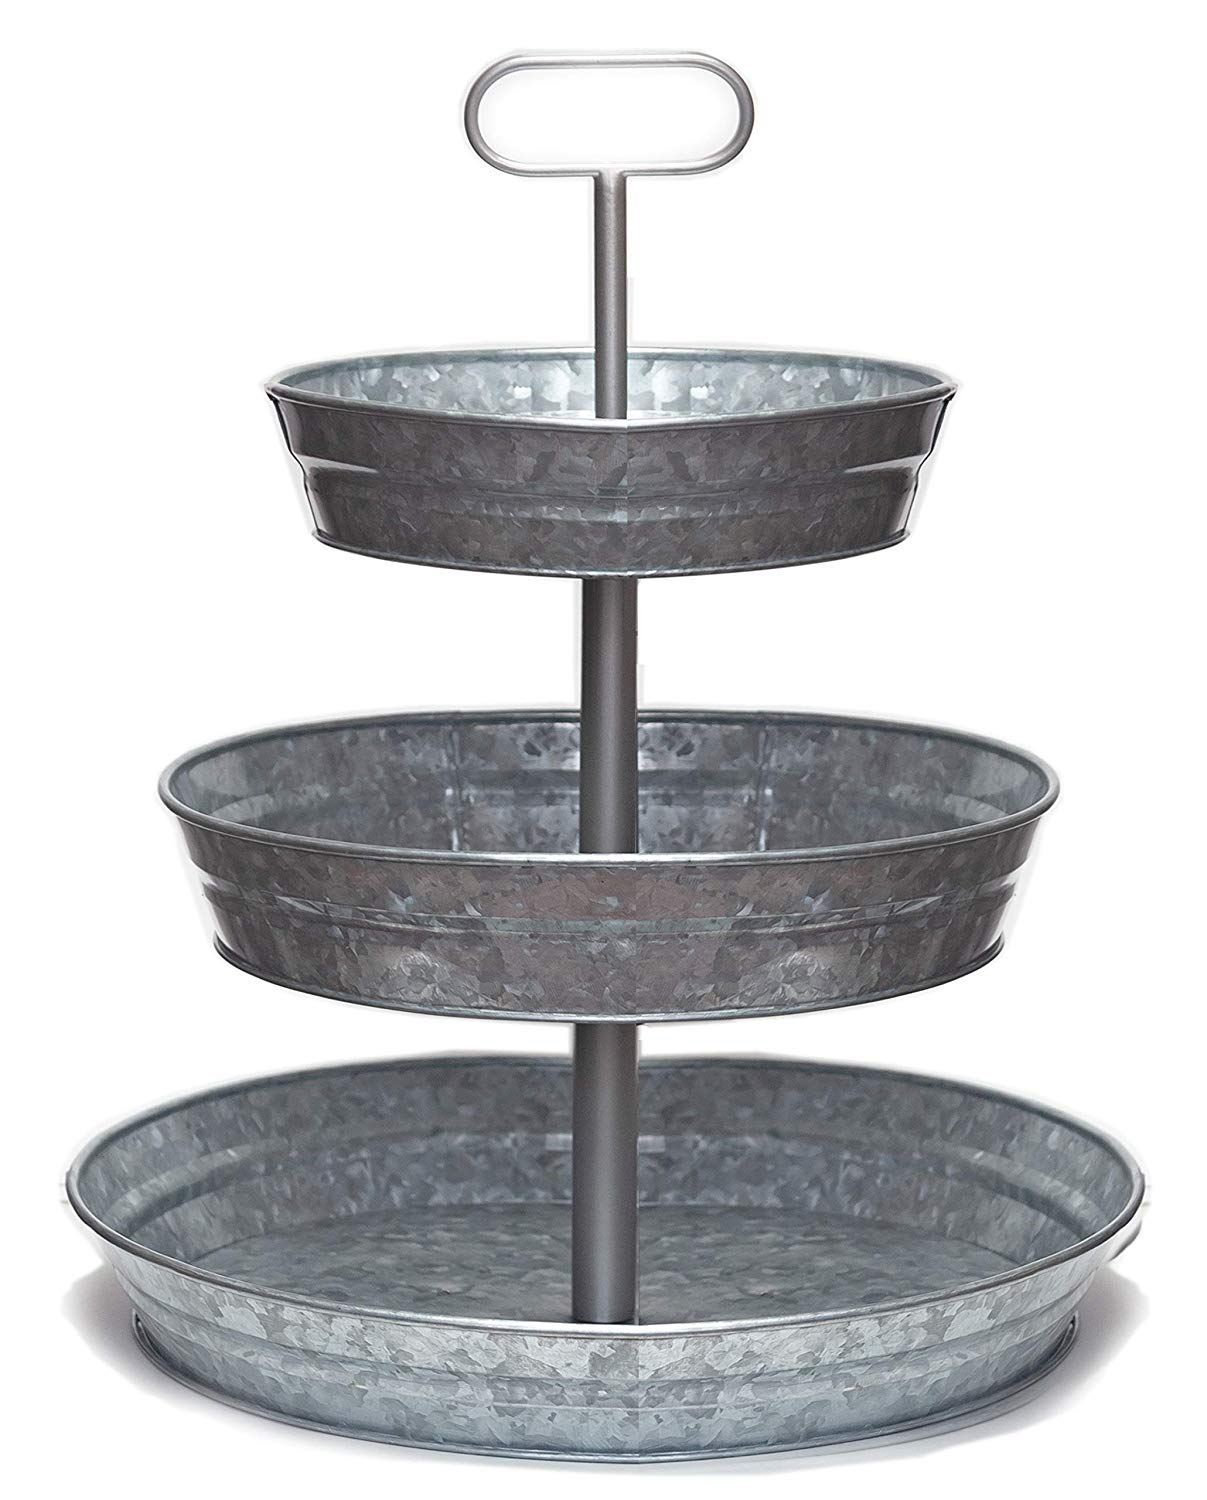 Rural HandiKraft - 3 Tier Serving Tray Galvanized (Large) - Handcrafted Premium Tray from India - Perfect for Party, Dessert, Fruit, Cupcake - Serving Tray with Sturdy Metal - Rust-Free Metal Stand